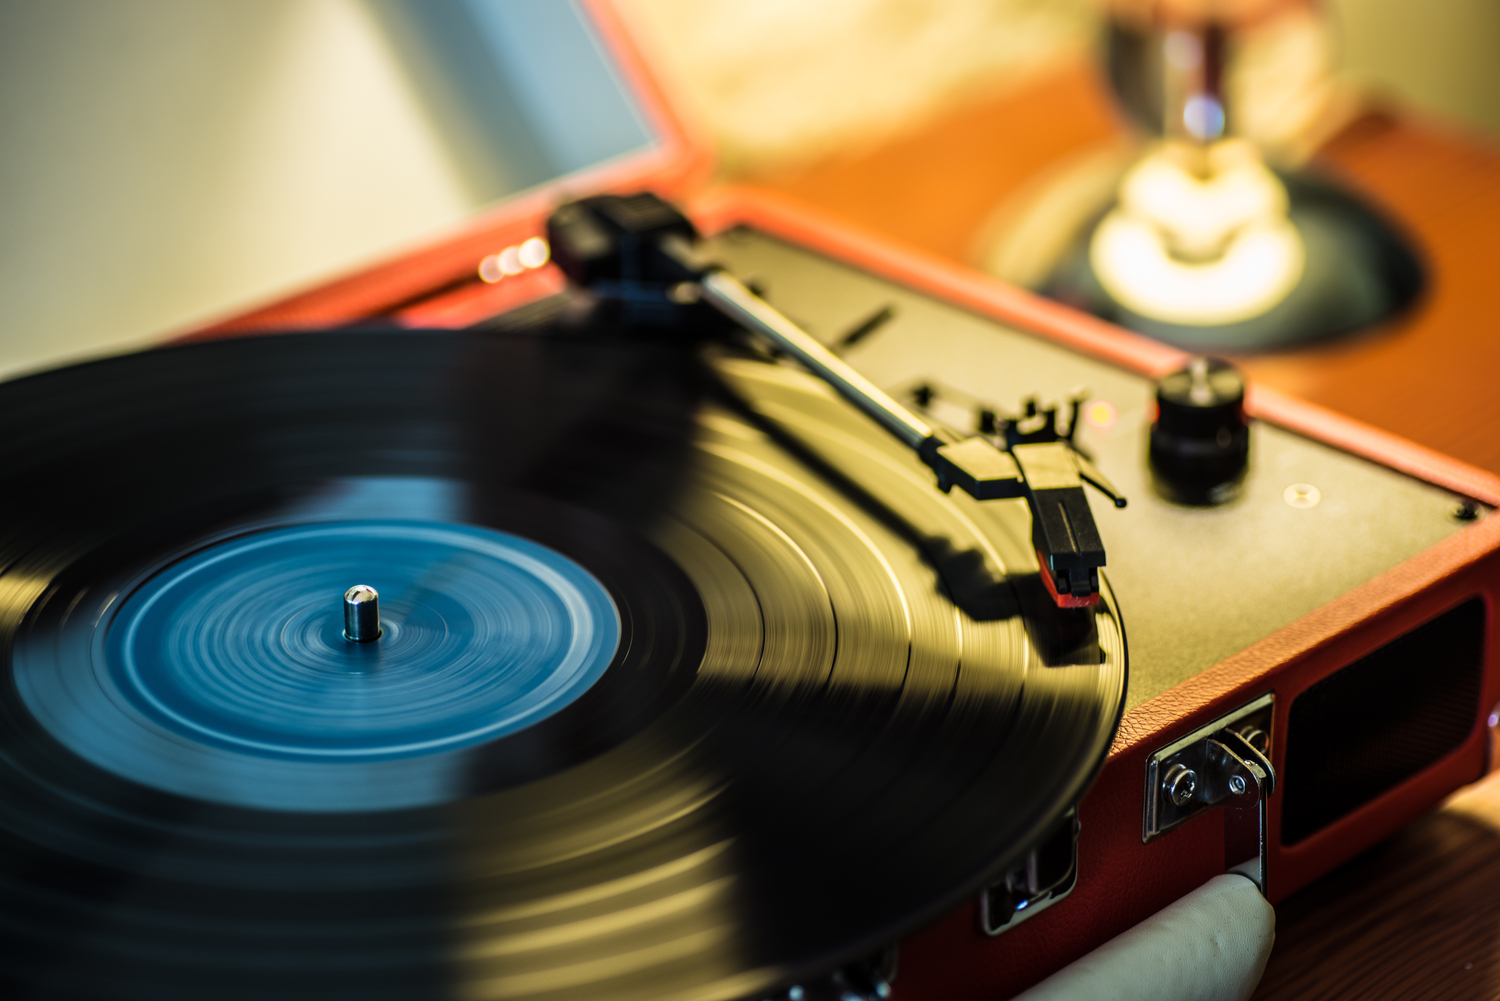 A vinyl record spinning on a suitcase record player